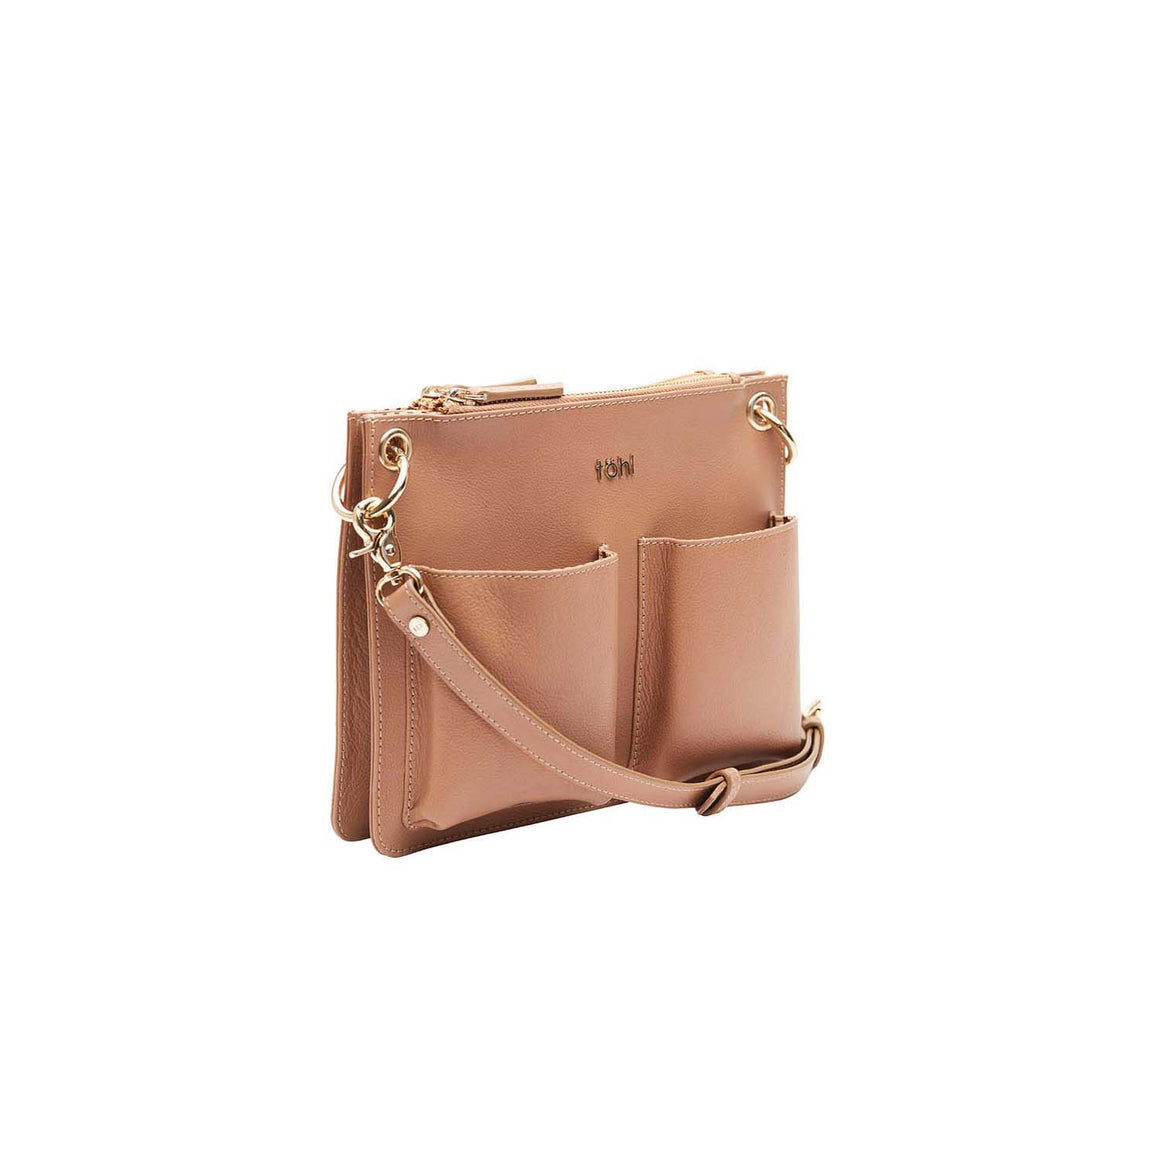 SG0025 - TOHL LENZEIN WOMEN'S SLING & CROSSBODY BAG - NUDE